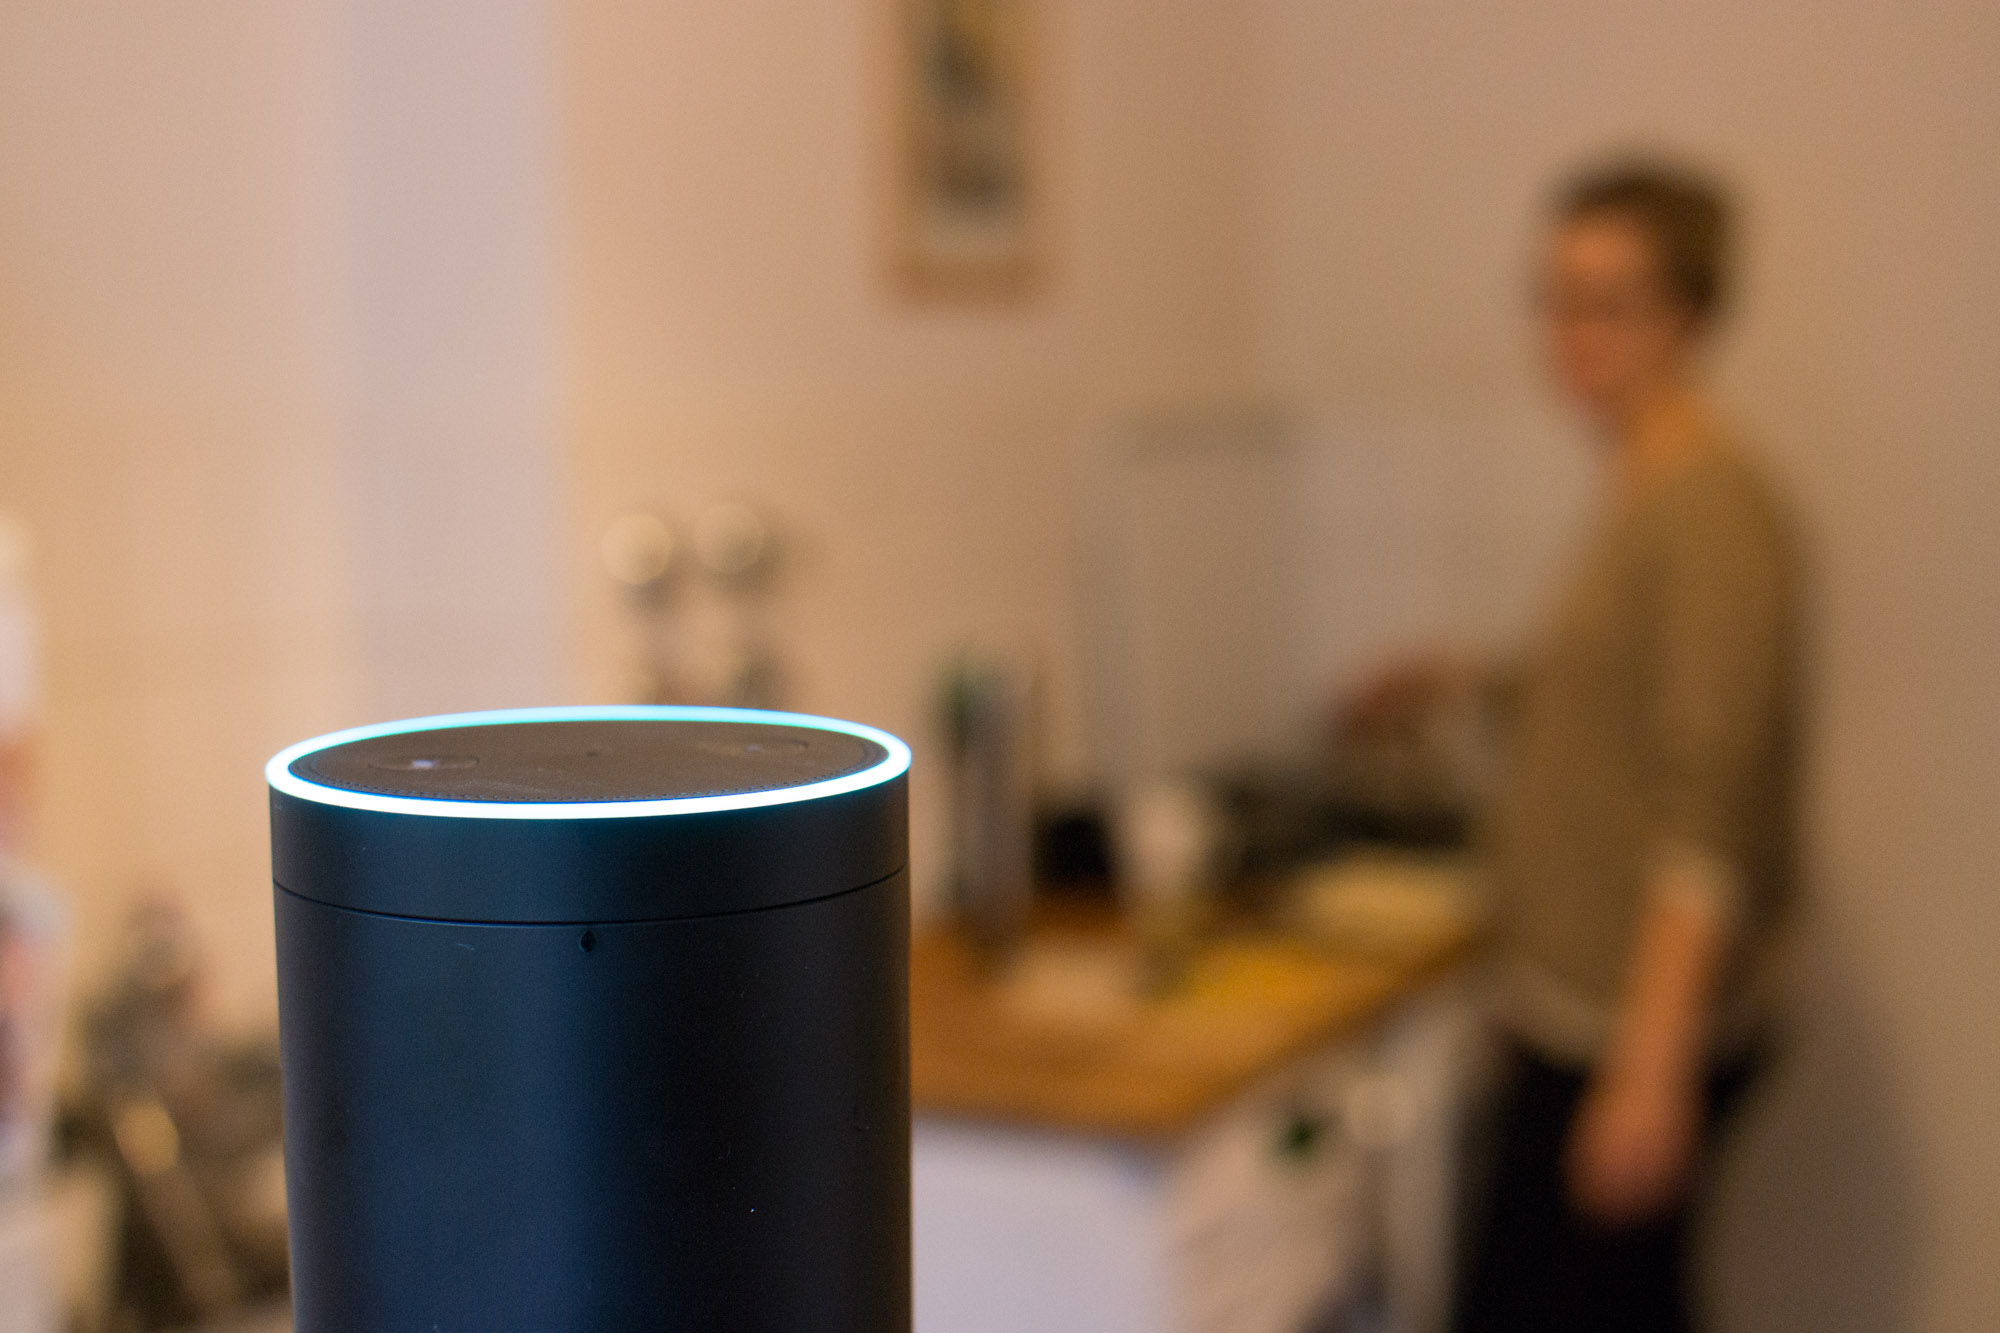 How Alexa could become your personal assistant